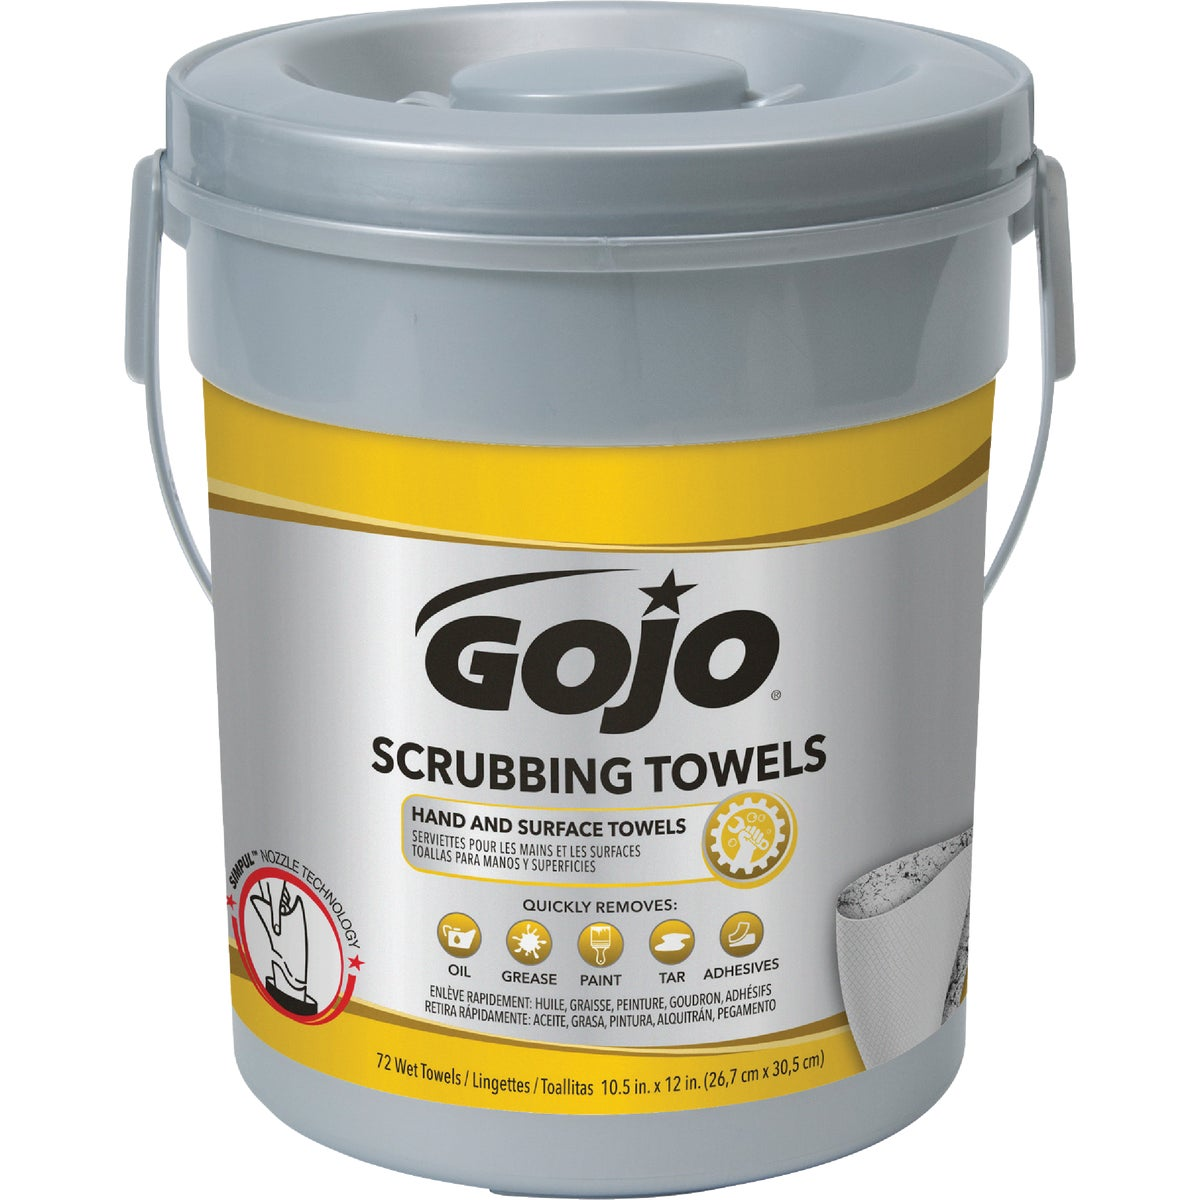 GOJO SCRUB WIPES 72 CT - 6396-06 by Go Jo Industries